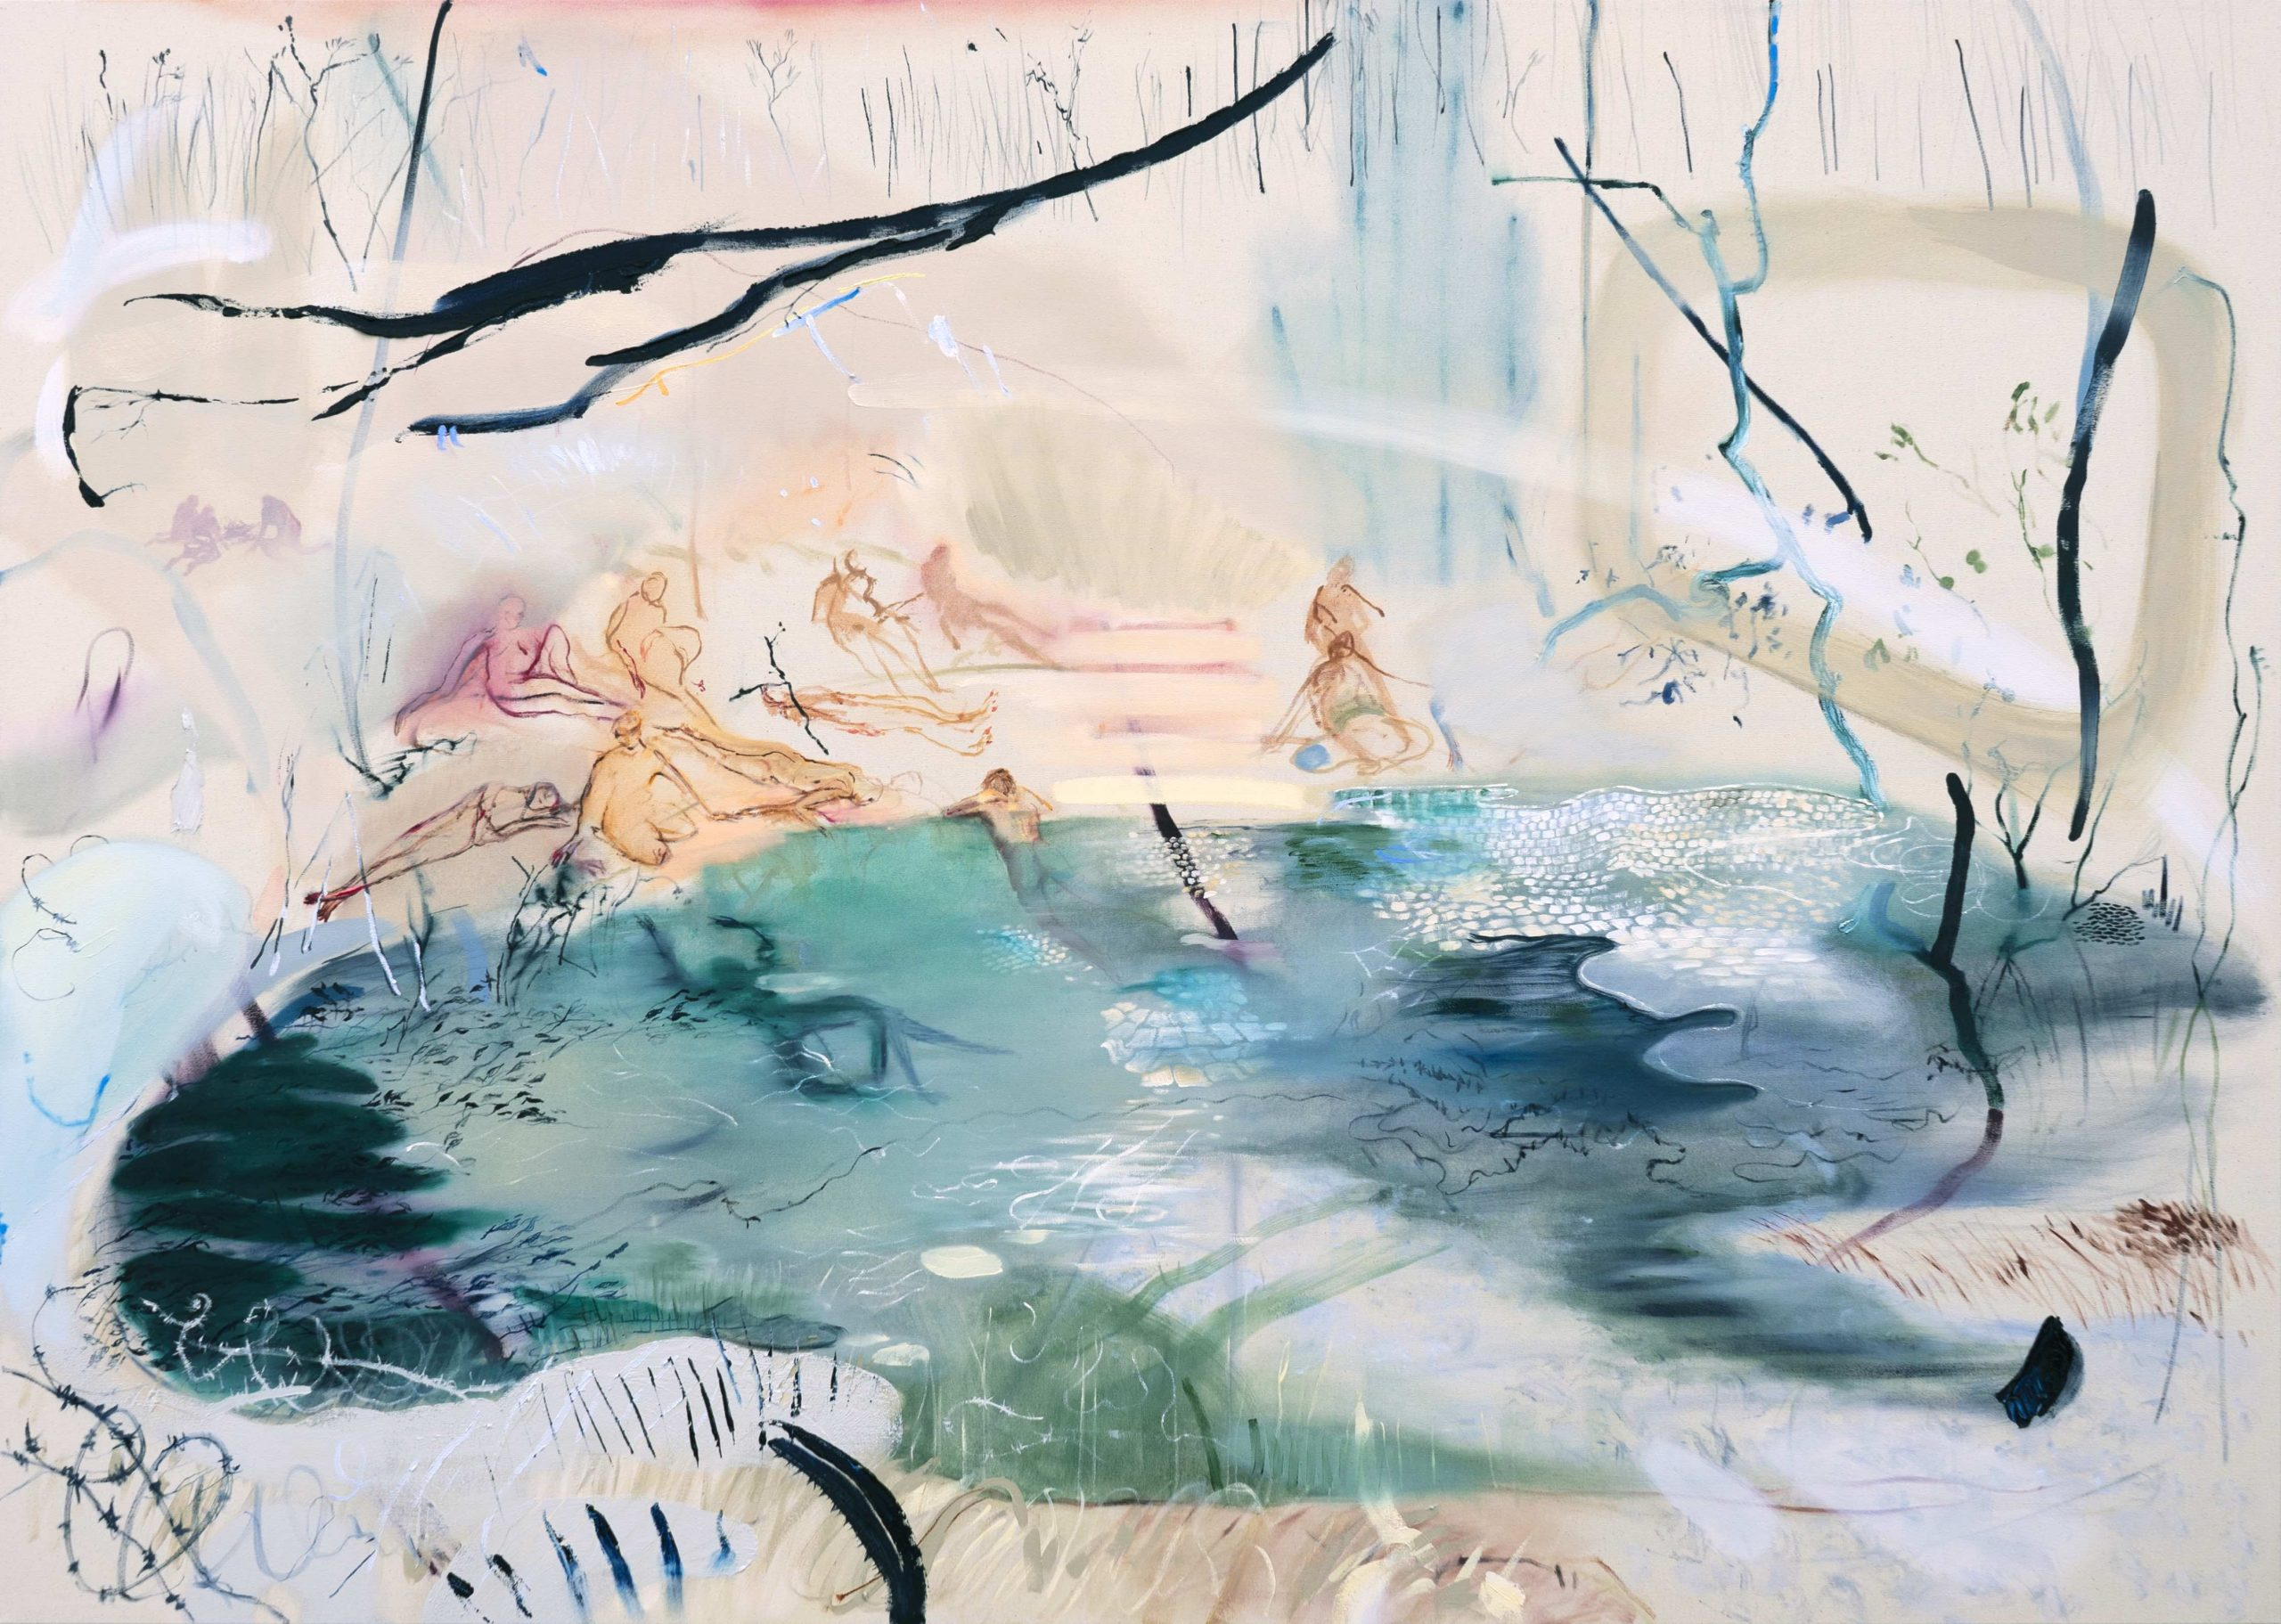 Araminta Blue_Openness closes in_130 x 180cm_oil on canvas_2020.